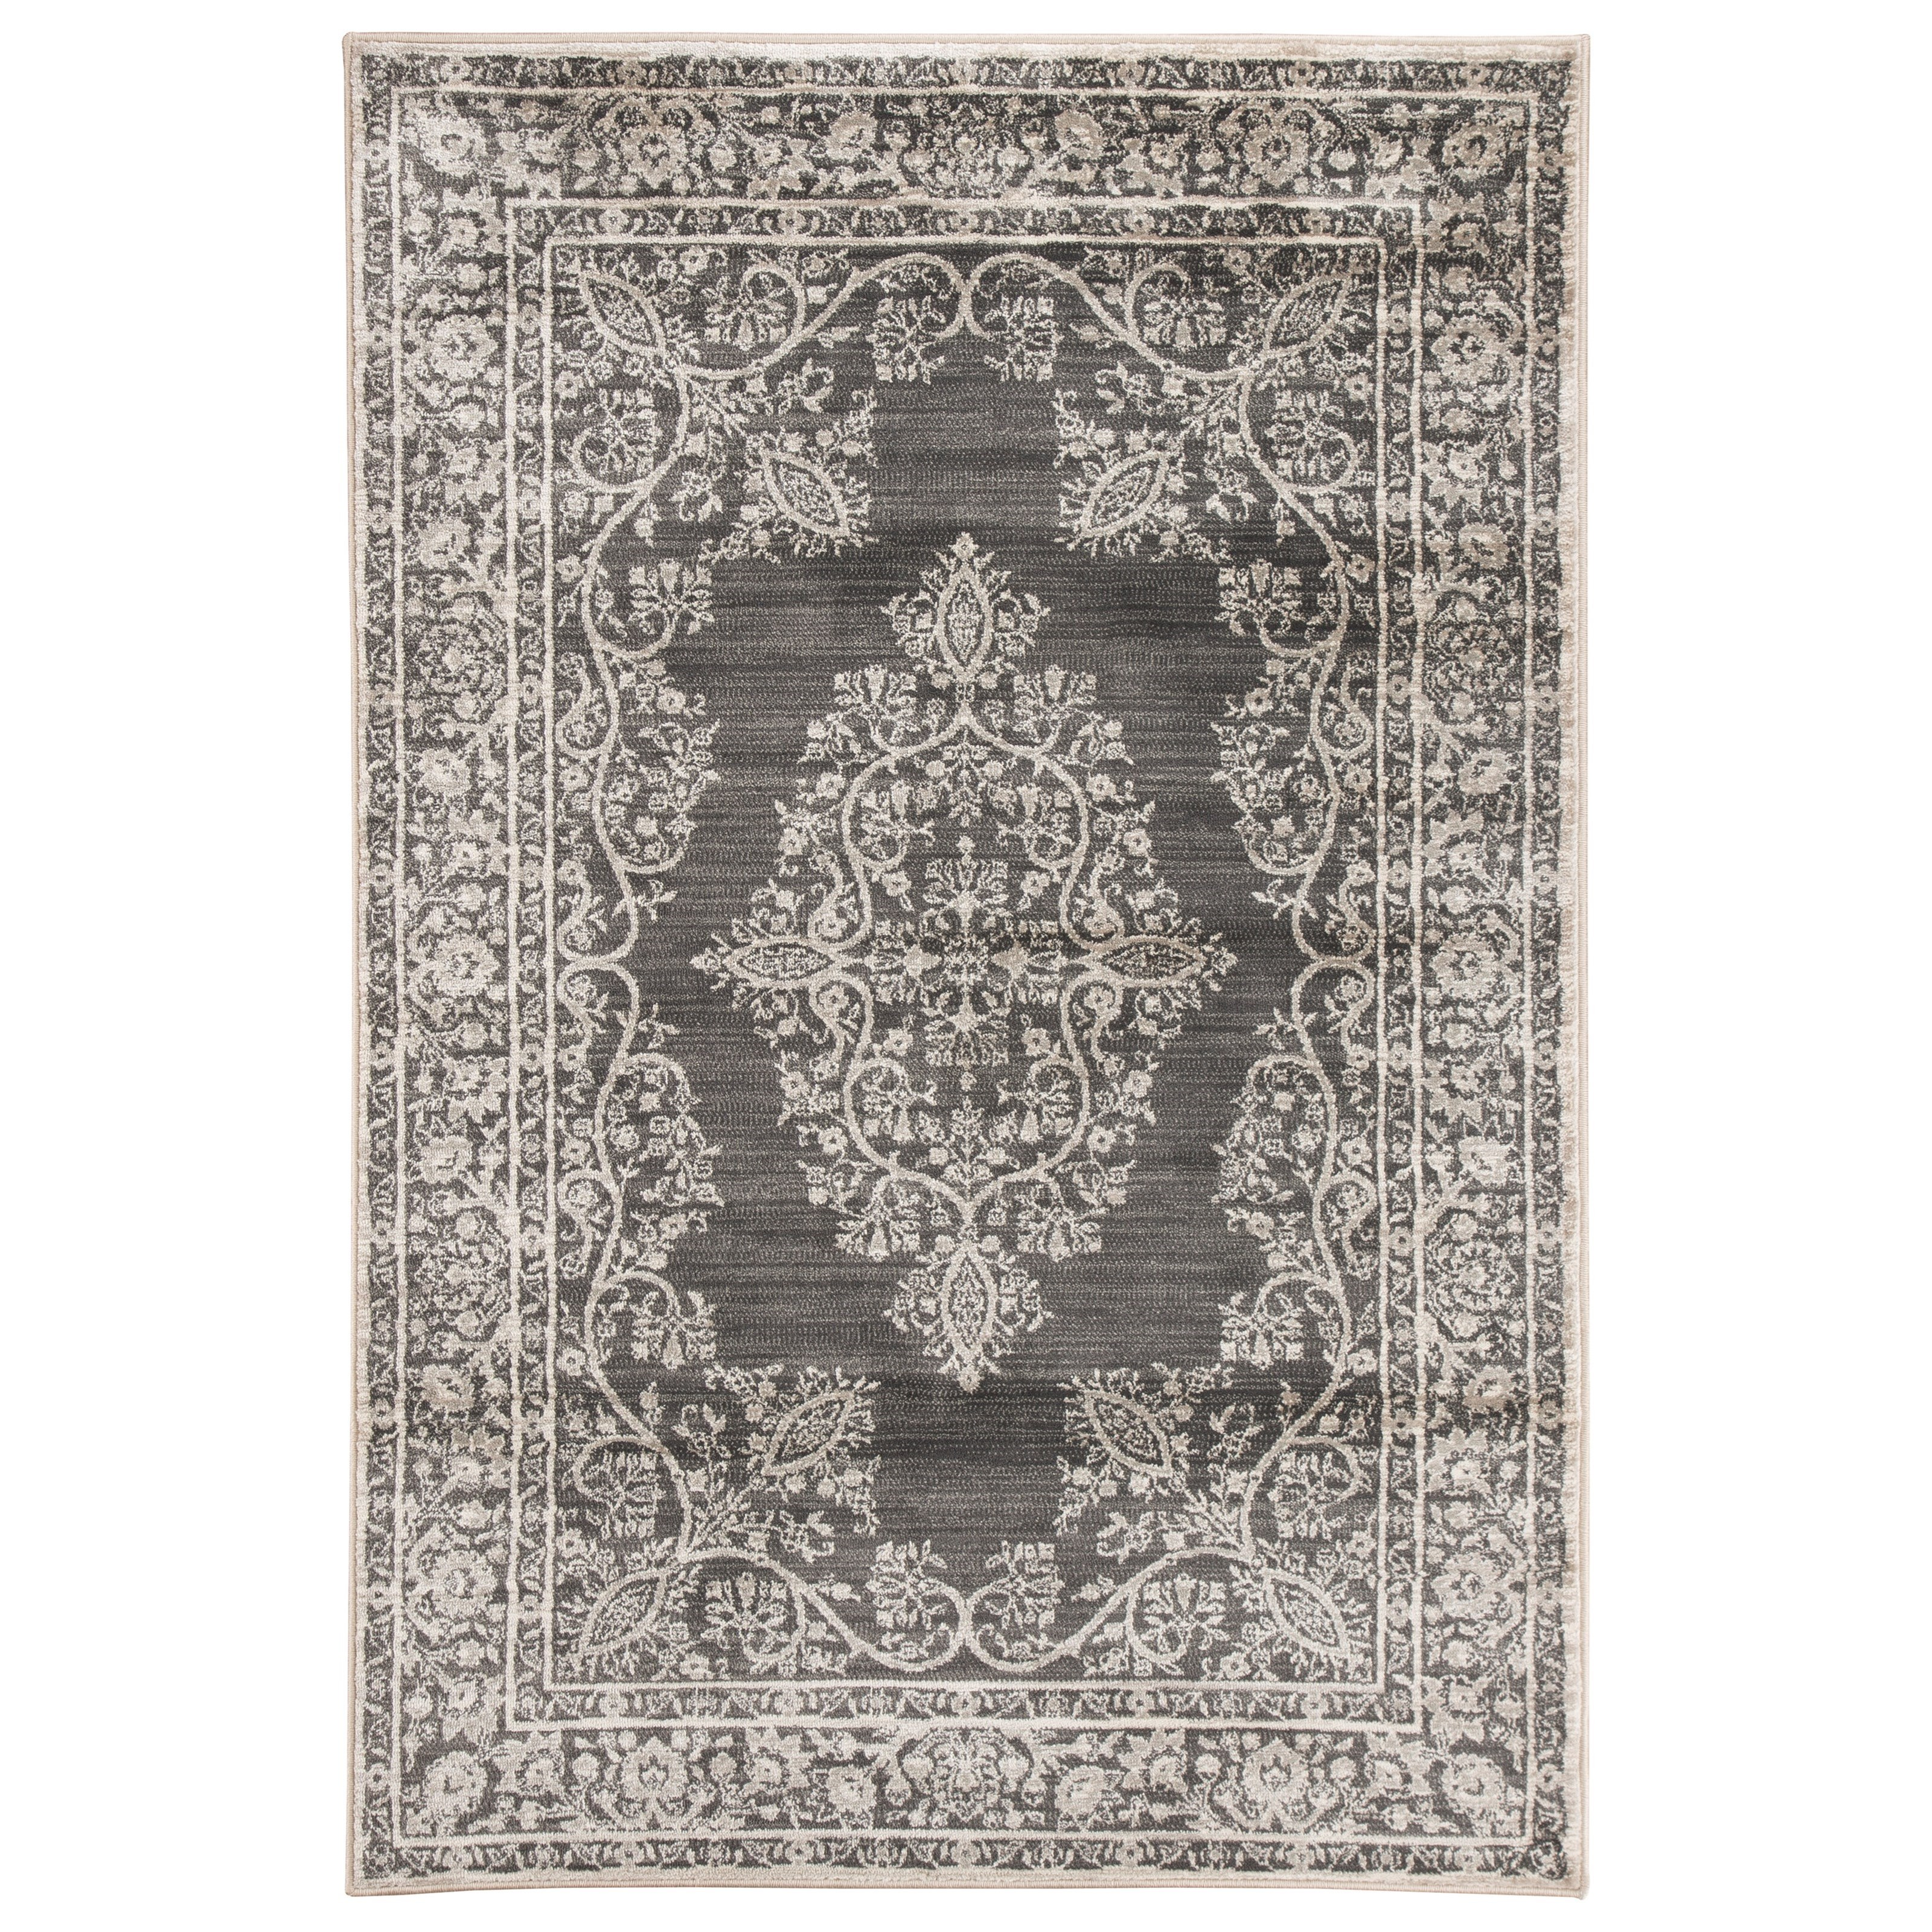 Signature Design by Ashley Transitional Area Rugs Ivy Town